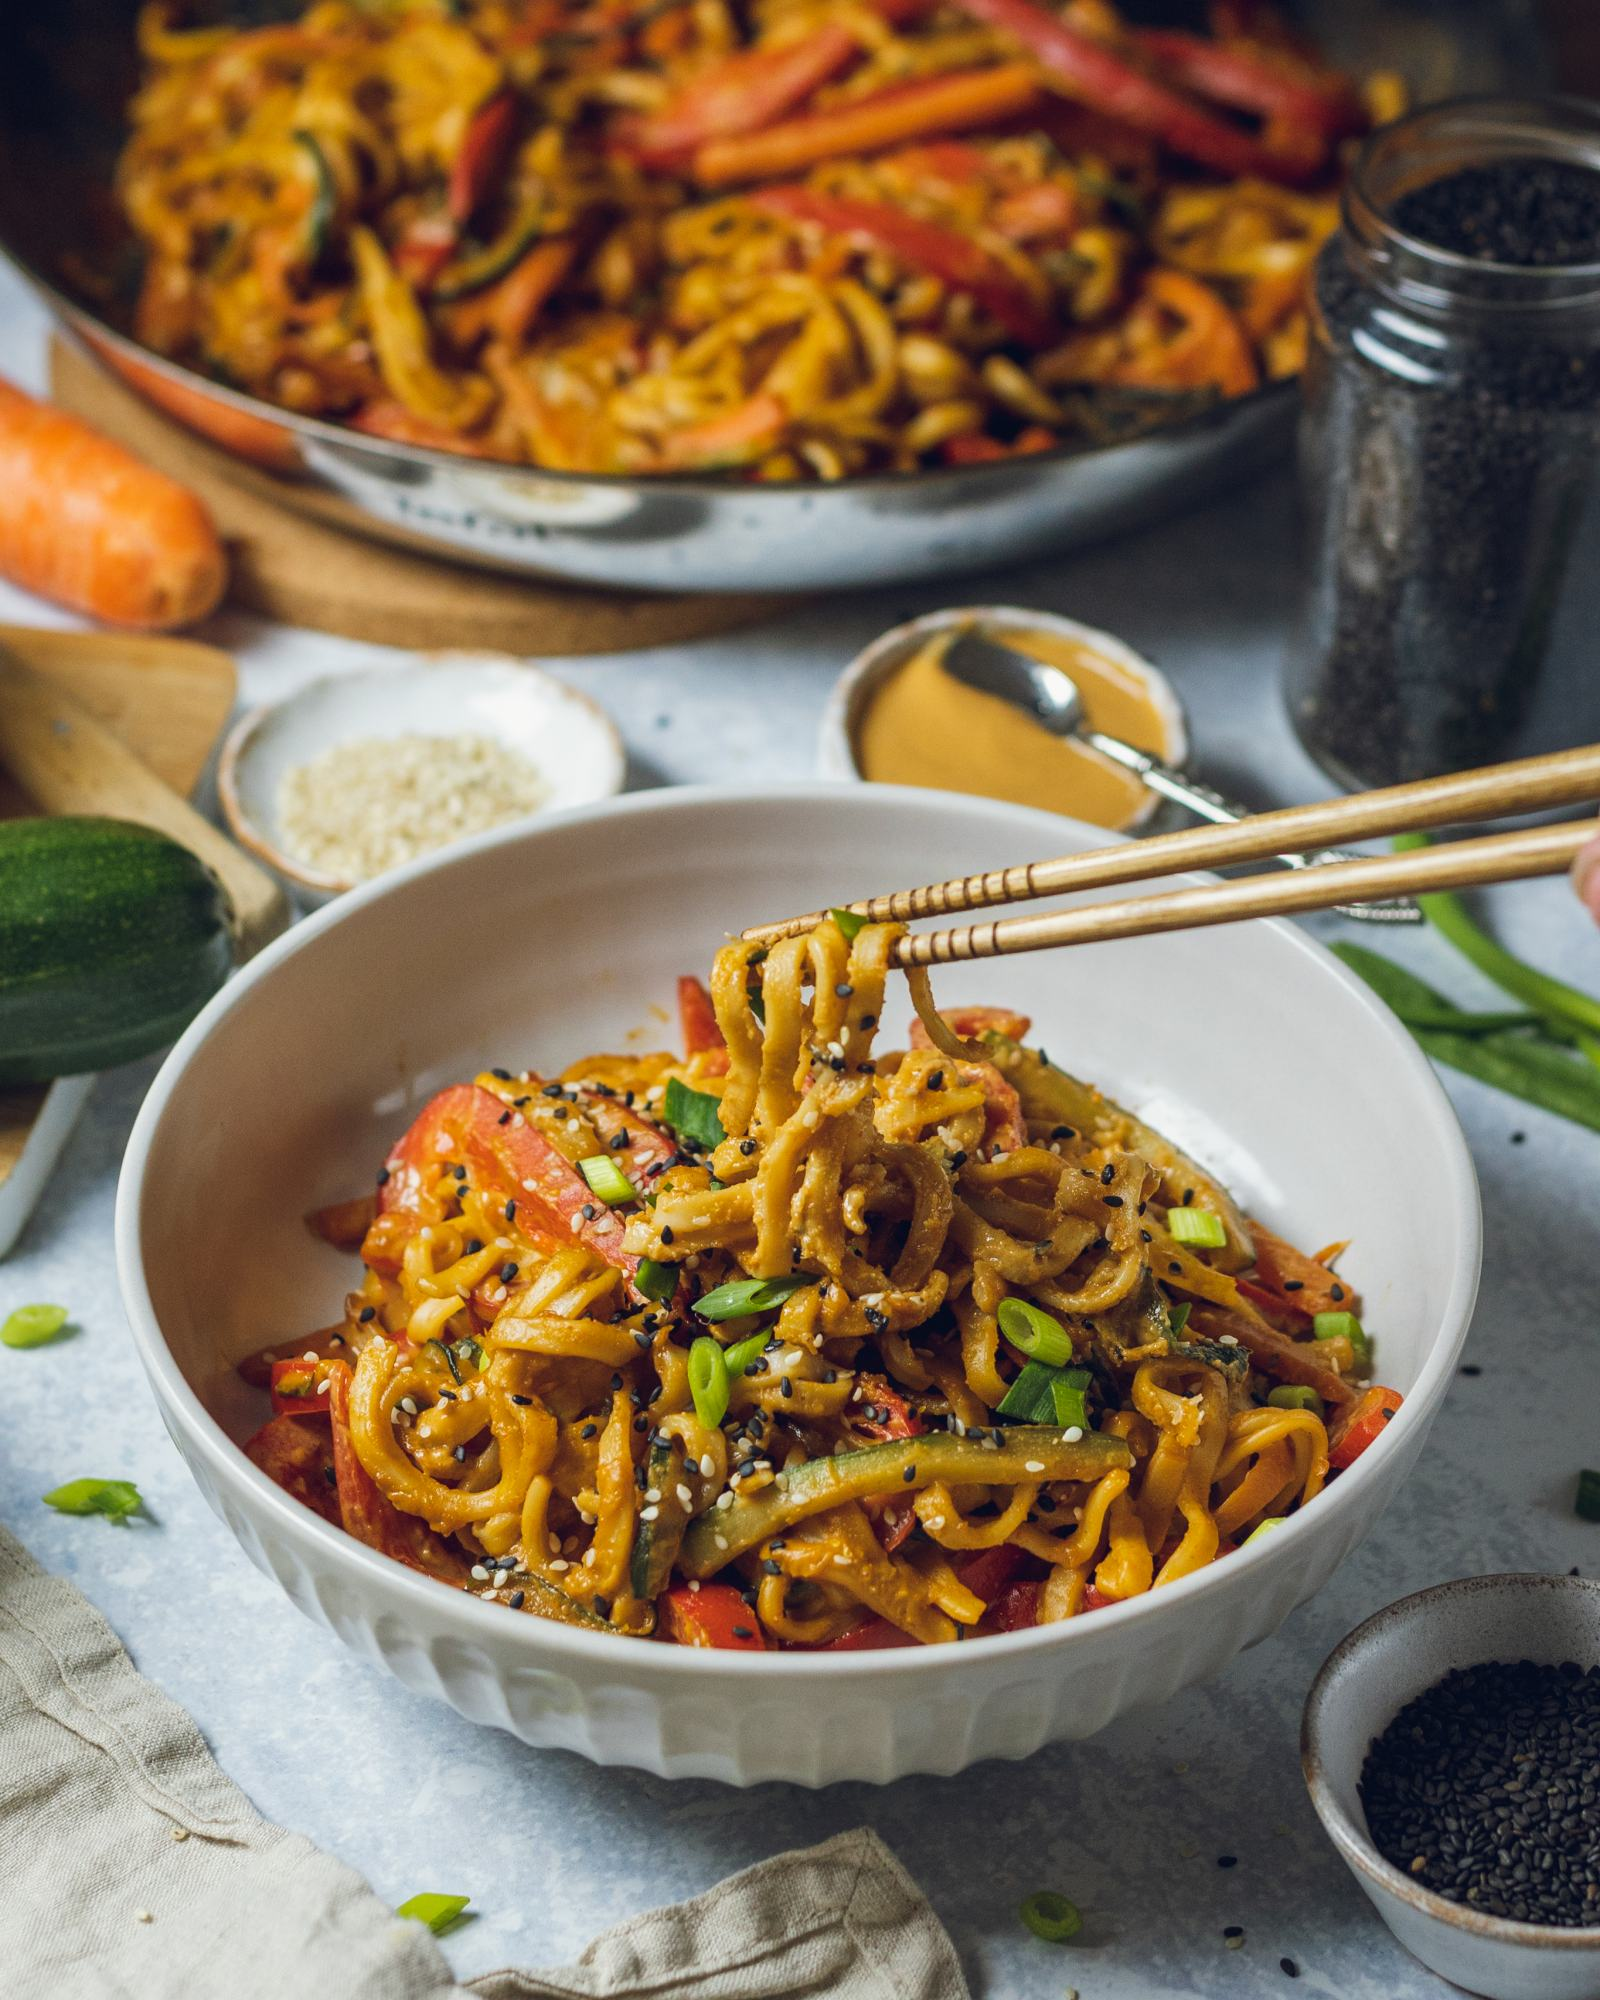 Vegan Peanut Noodles Recipe